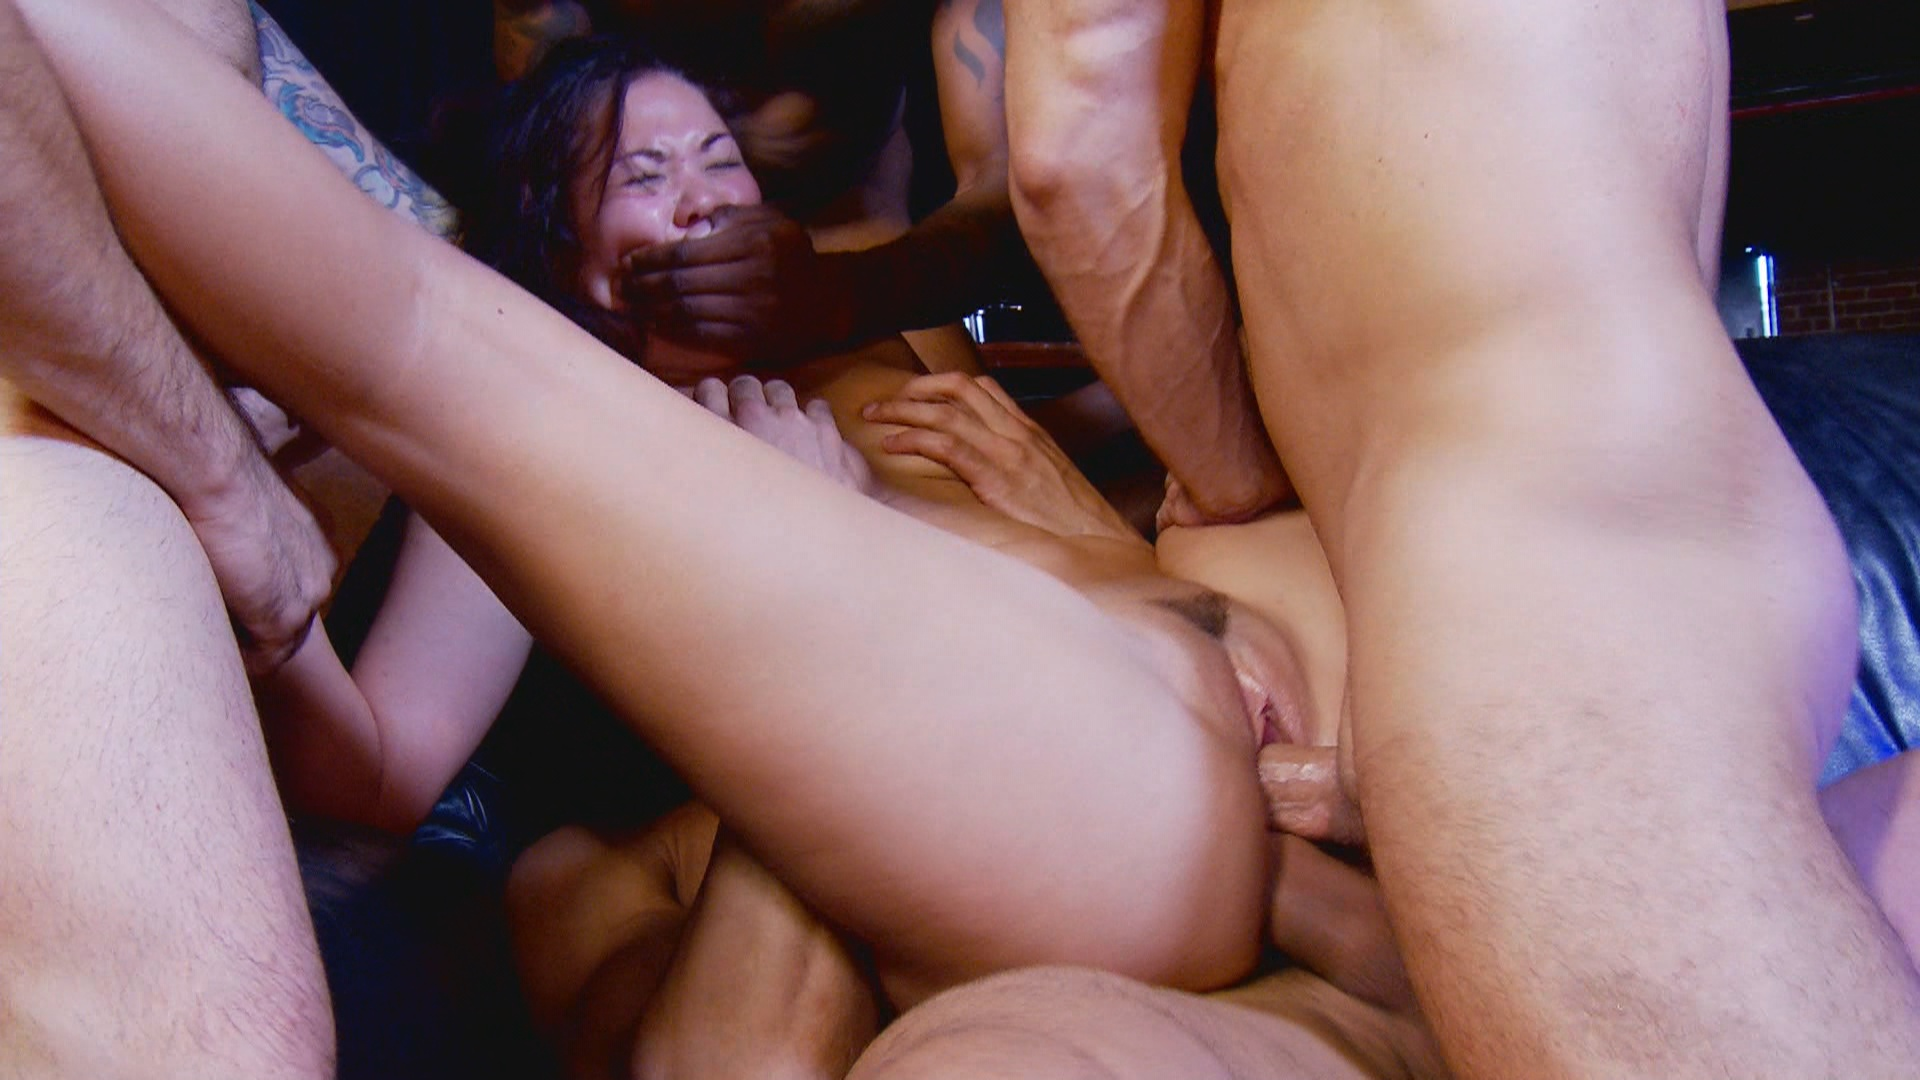 Hardcore Gangbang: The House Always Wins Xvideos